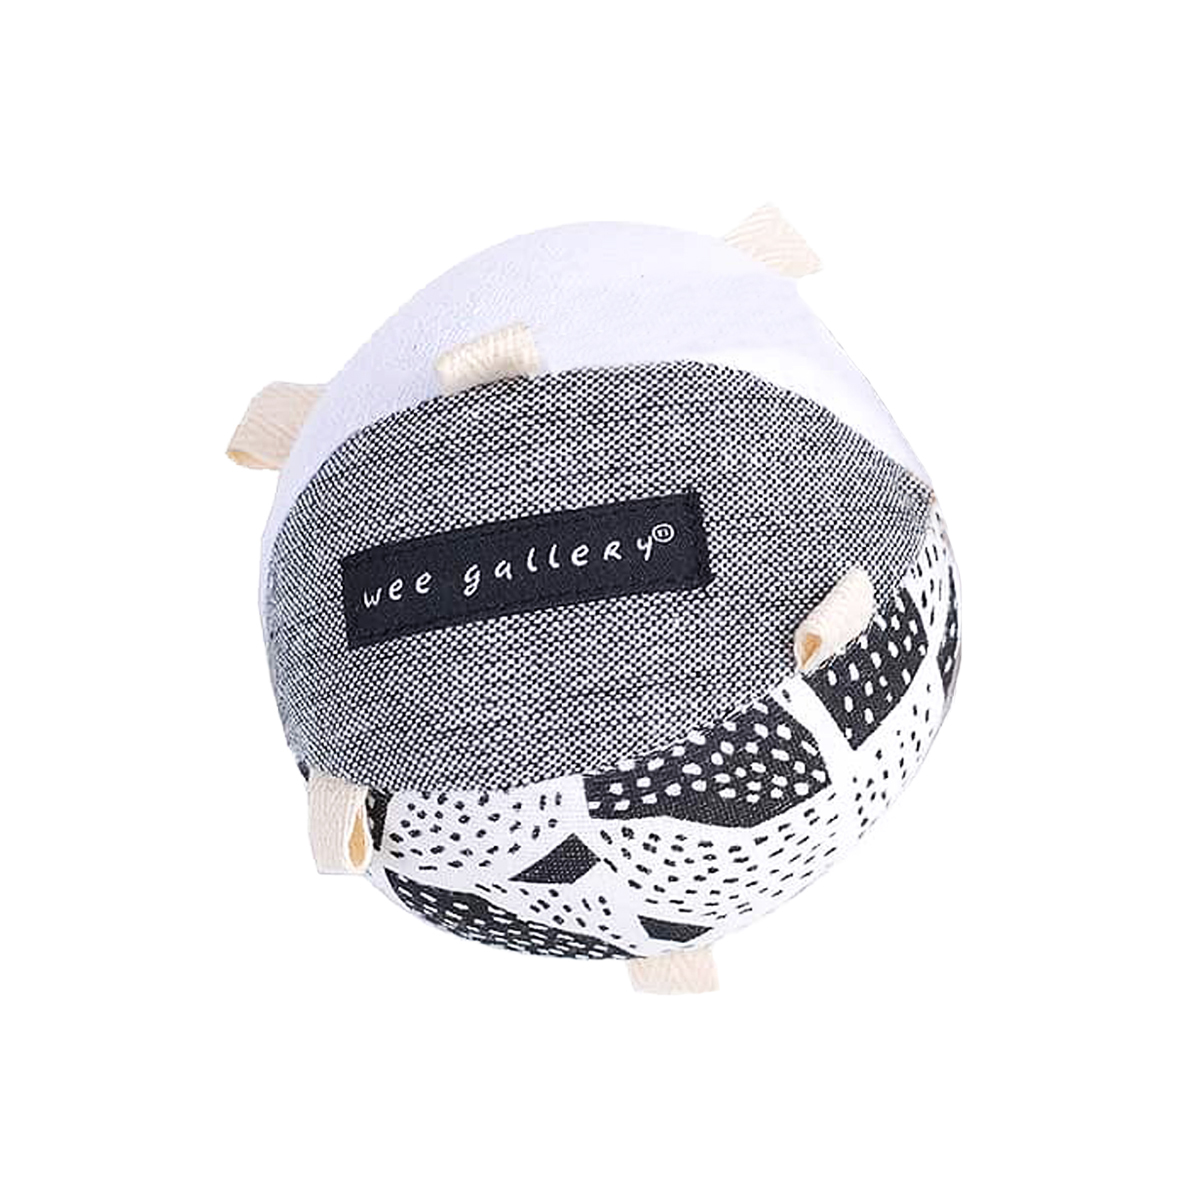 Wee Gallery Organic Cotton Taggy Ball